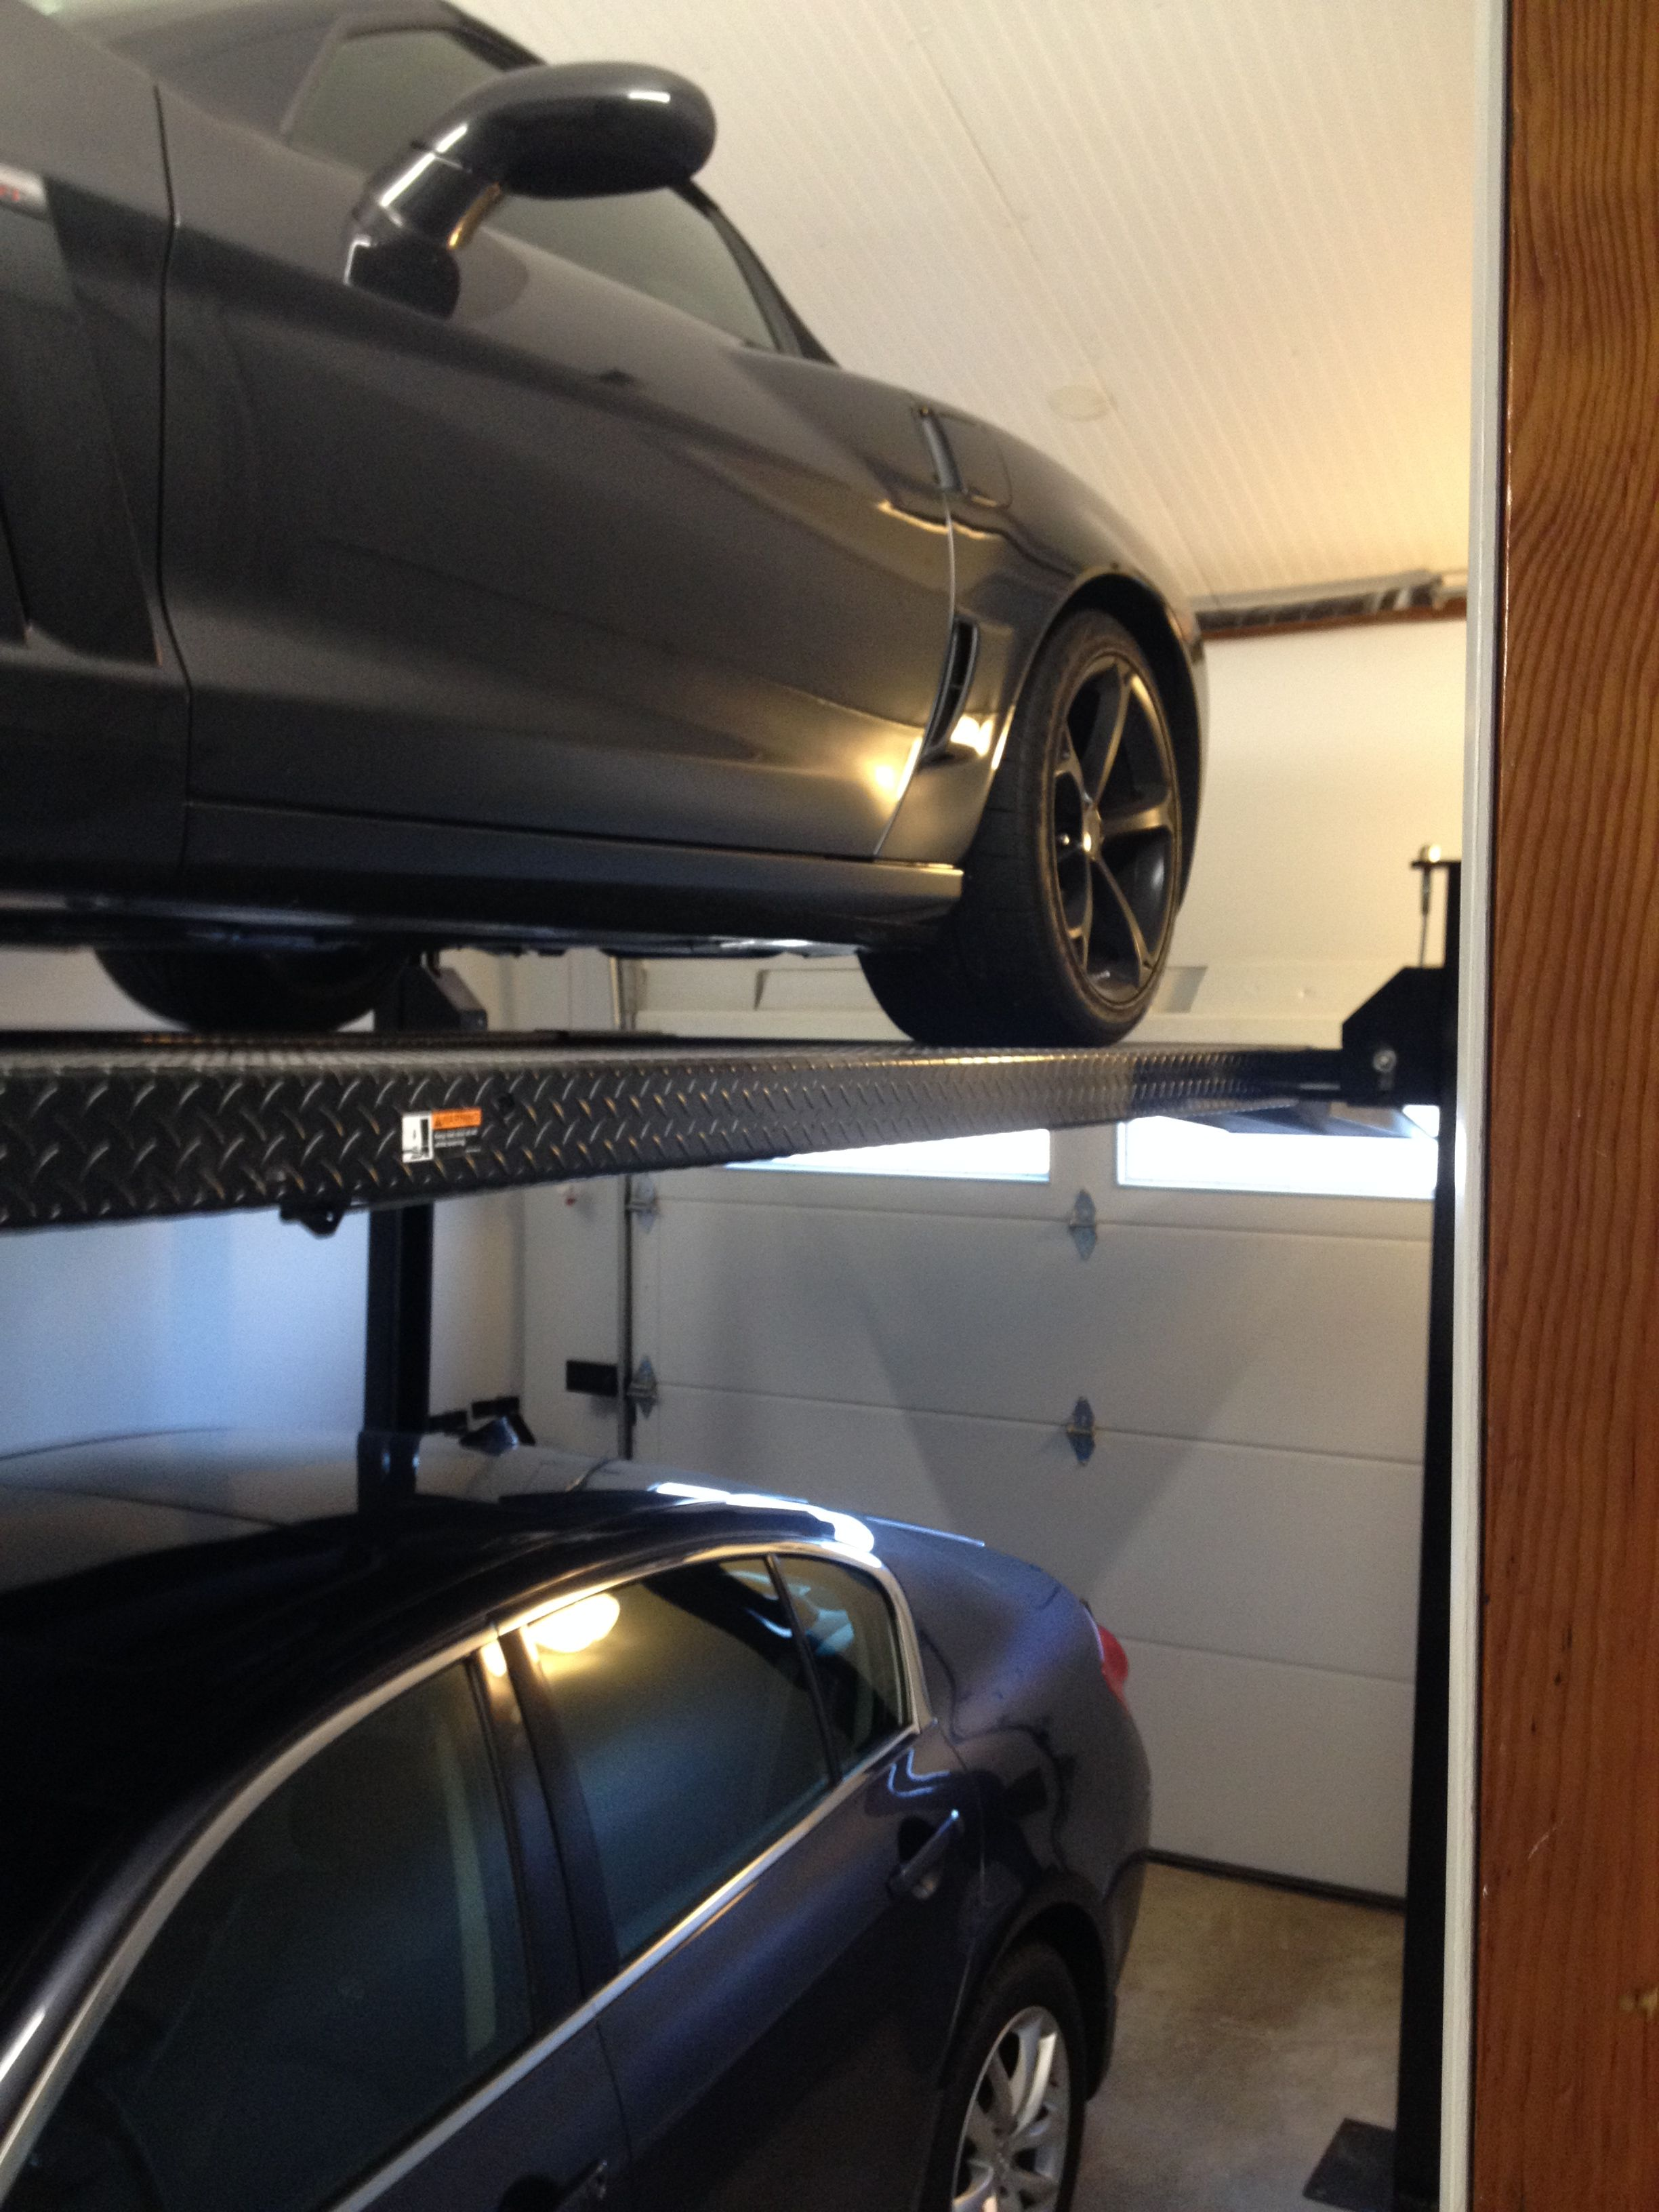 Car Lift In Garage Garage Car Lift Man Cave Makeover Diy Garage Car Lift Garage